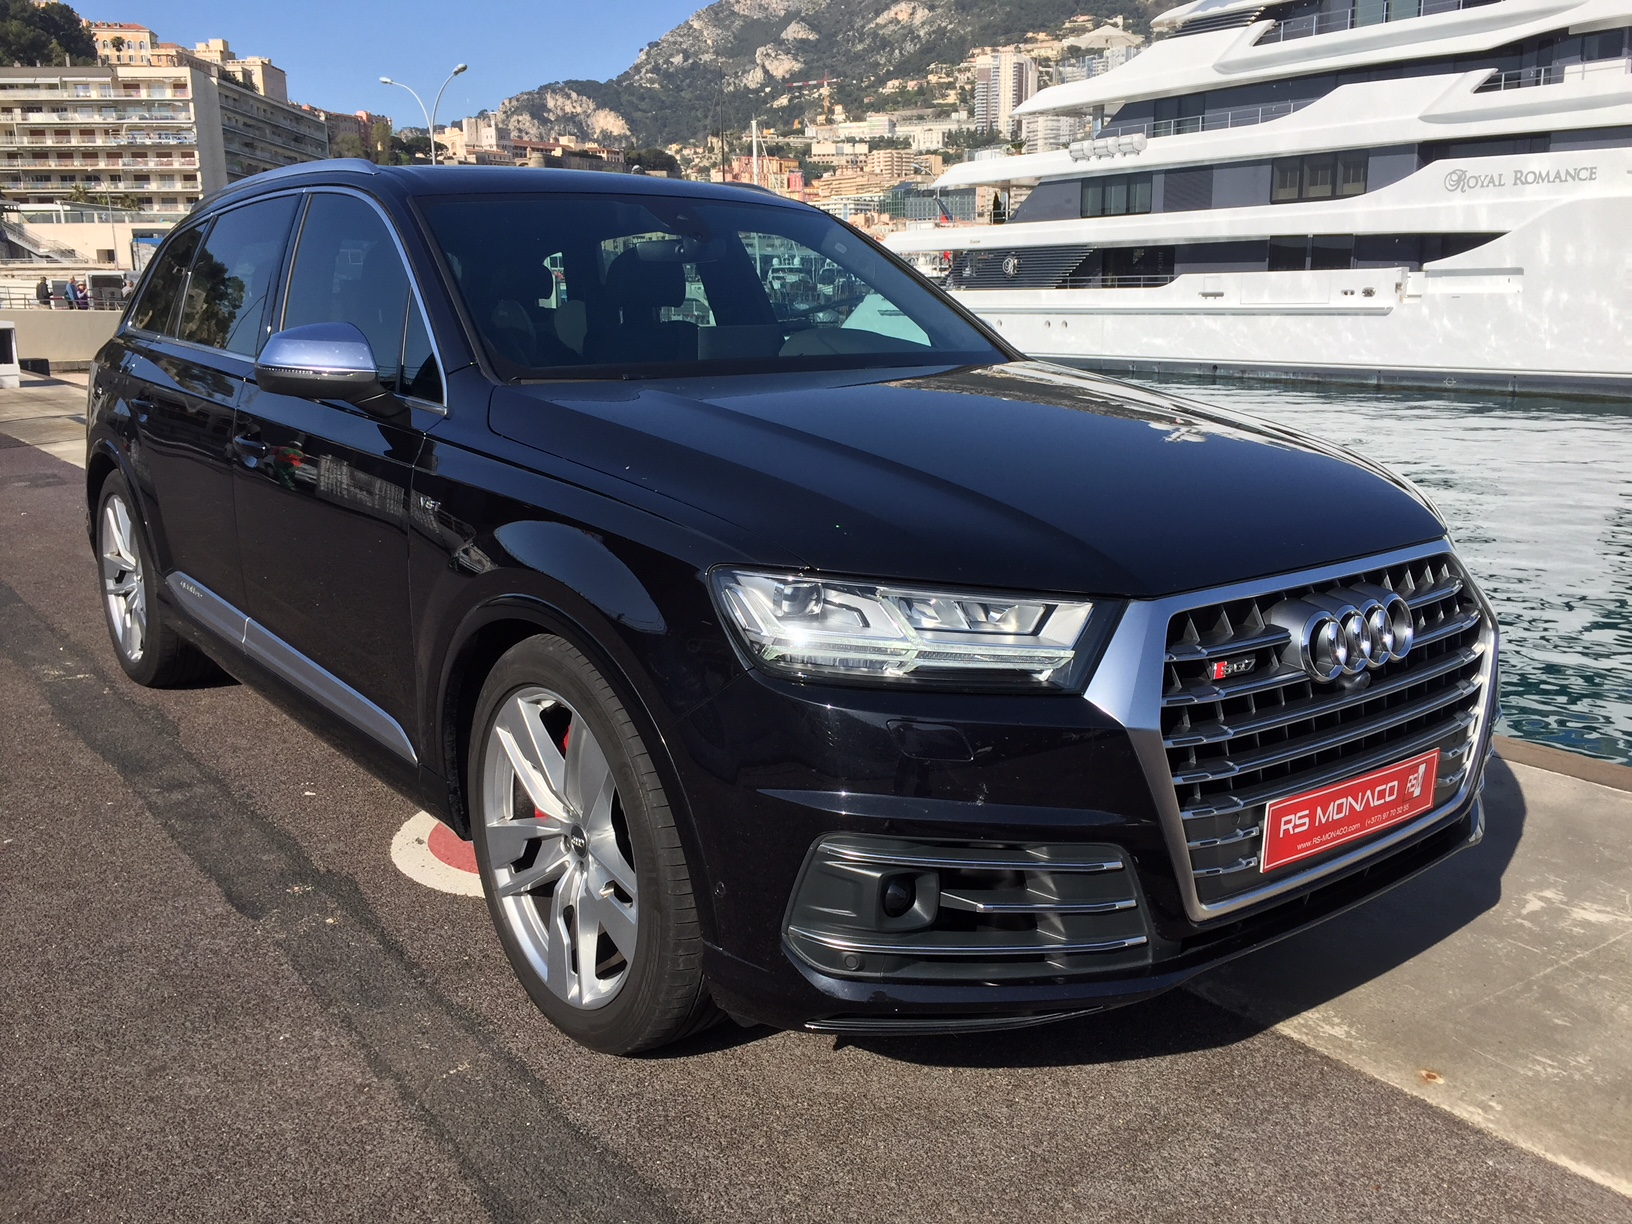 audi sq7 2 4l tdi 435 quattro tiptro 7 places s l ctionn par rs monaco. Black Bedroom Furniture Sets. Home Design Ideas